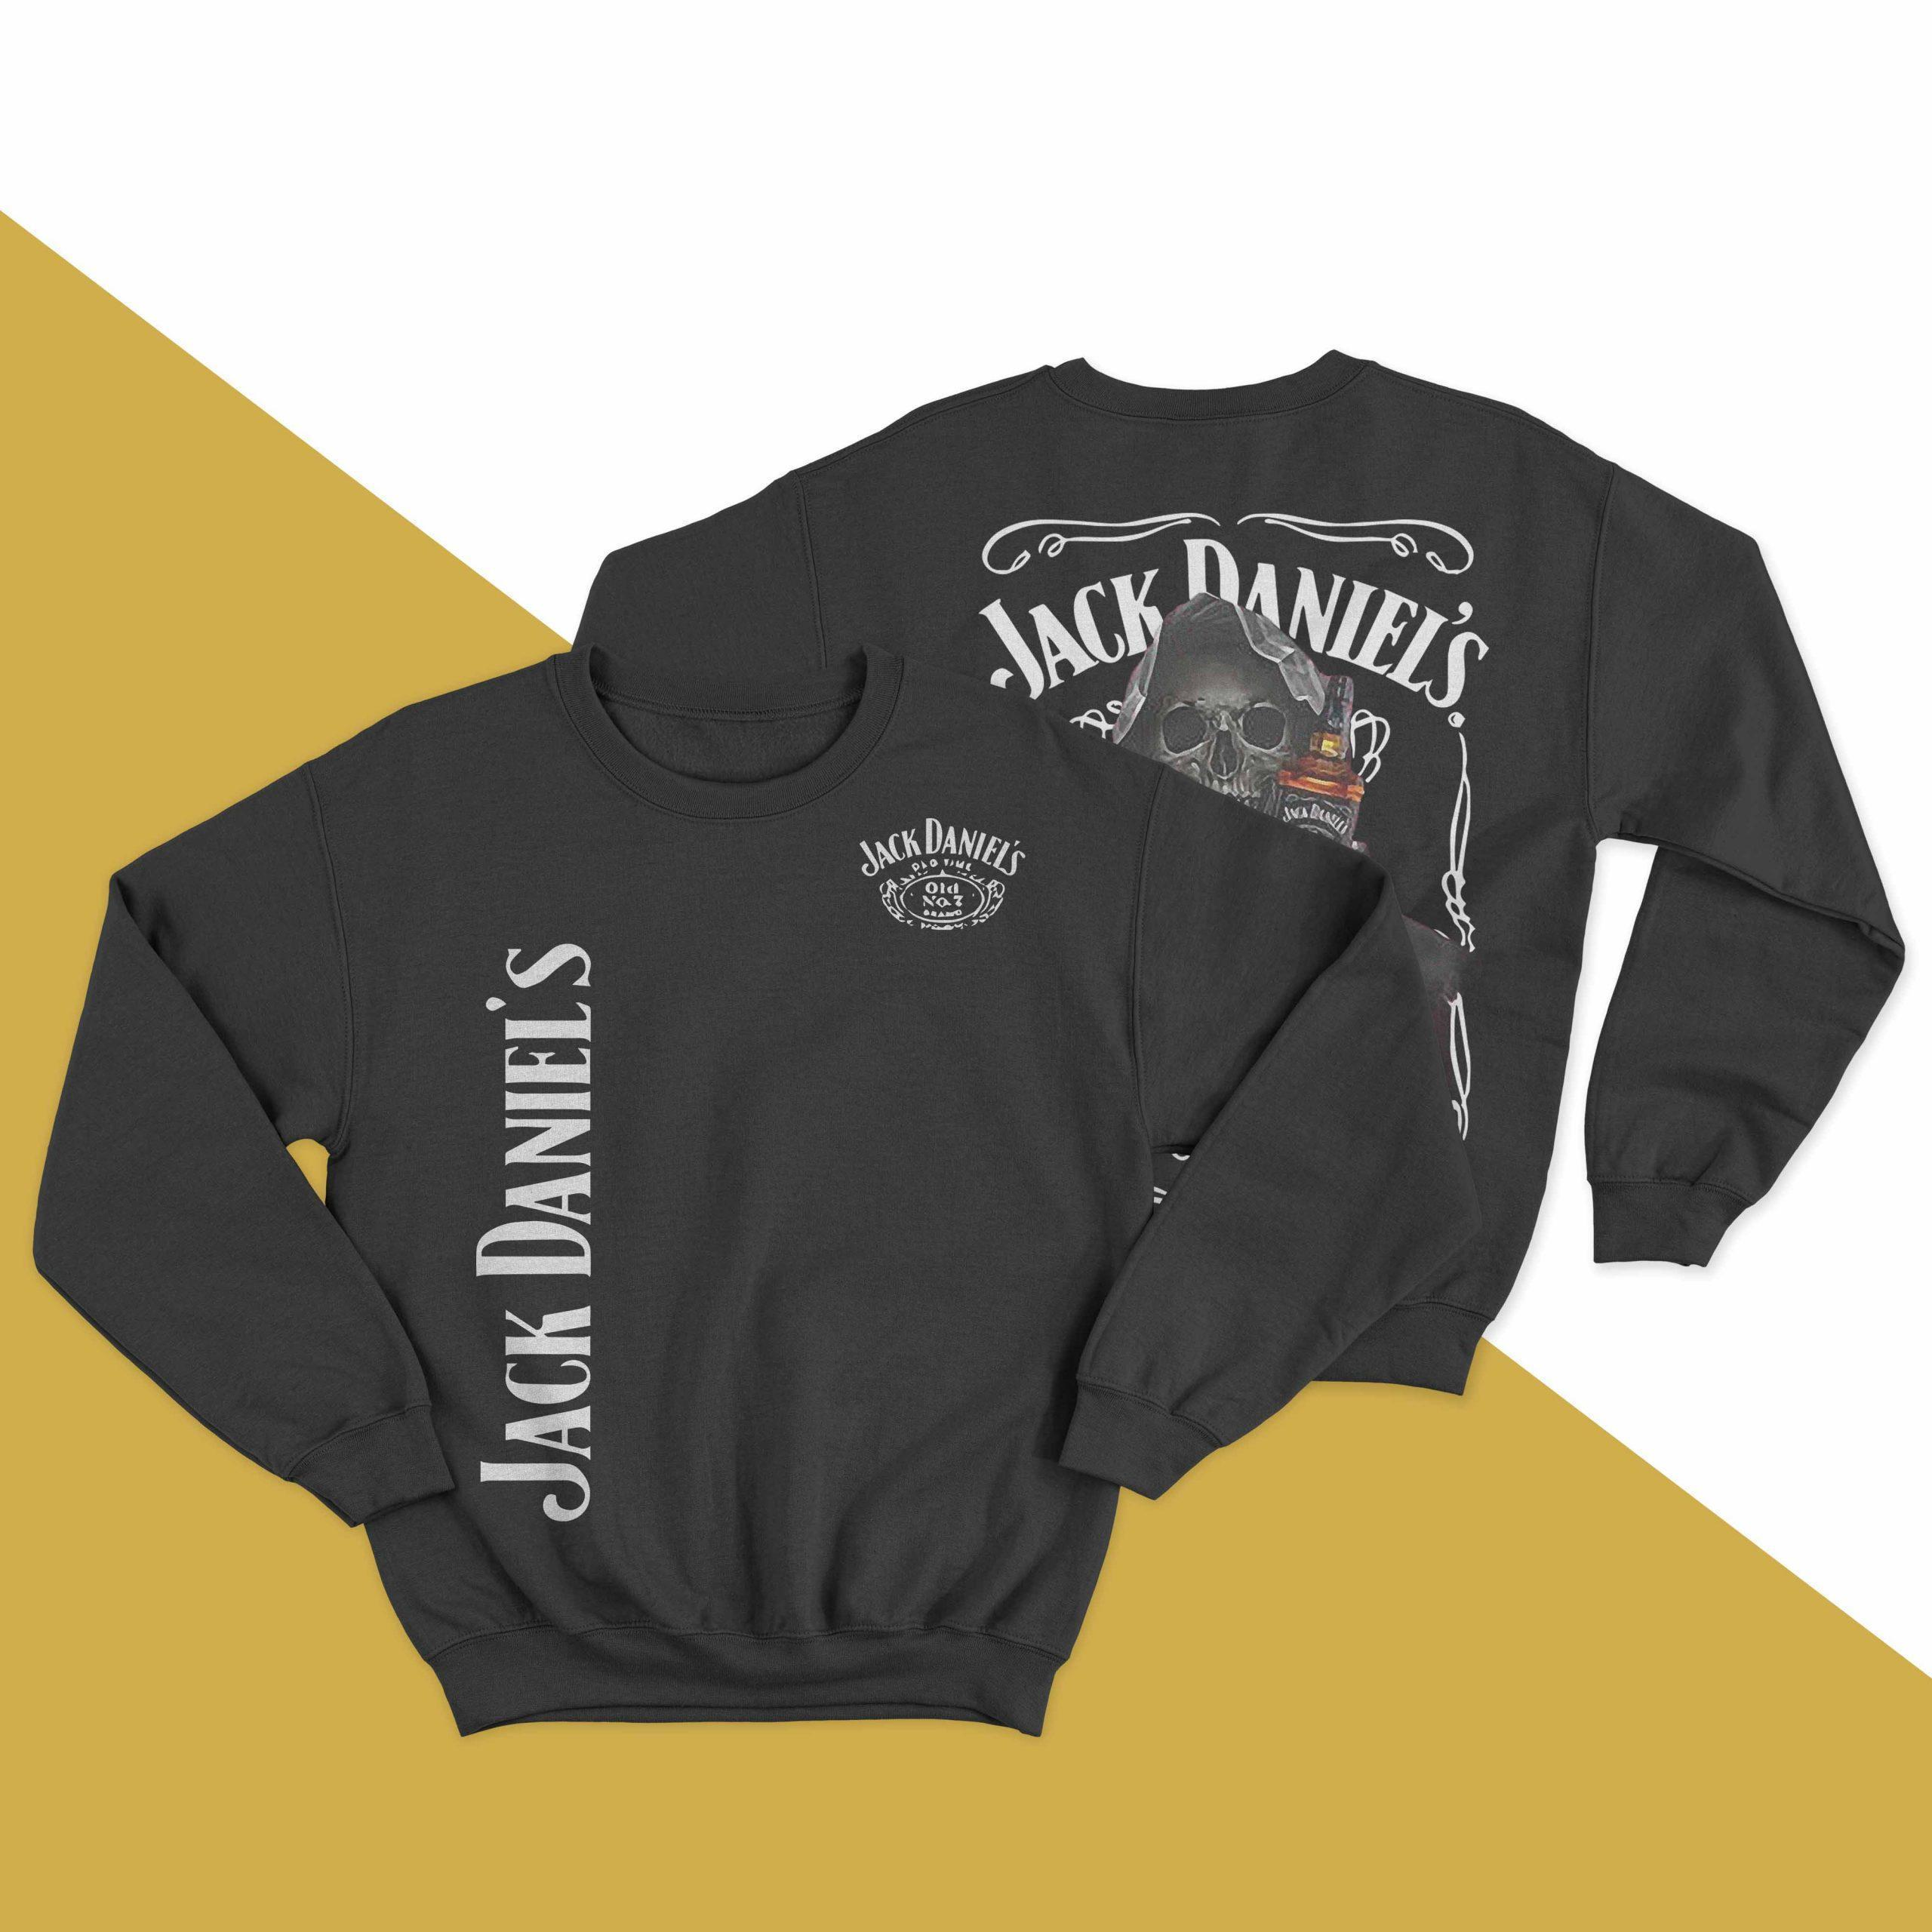 Death Jack Daniel's Sweater